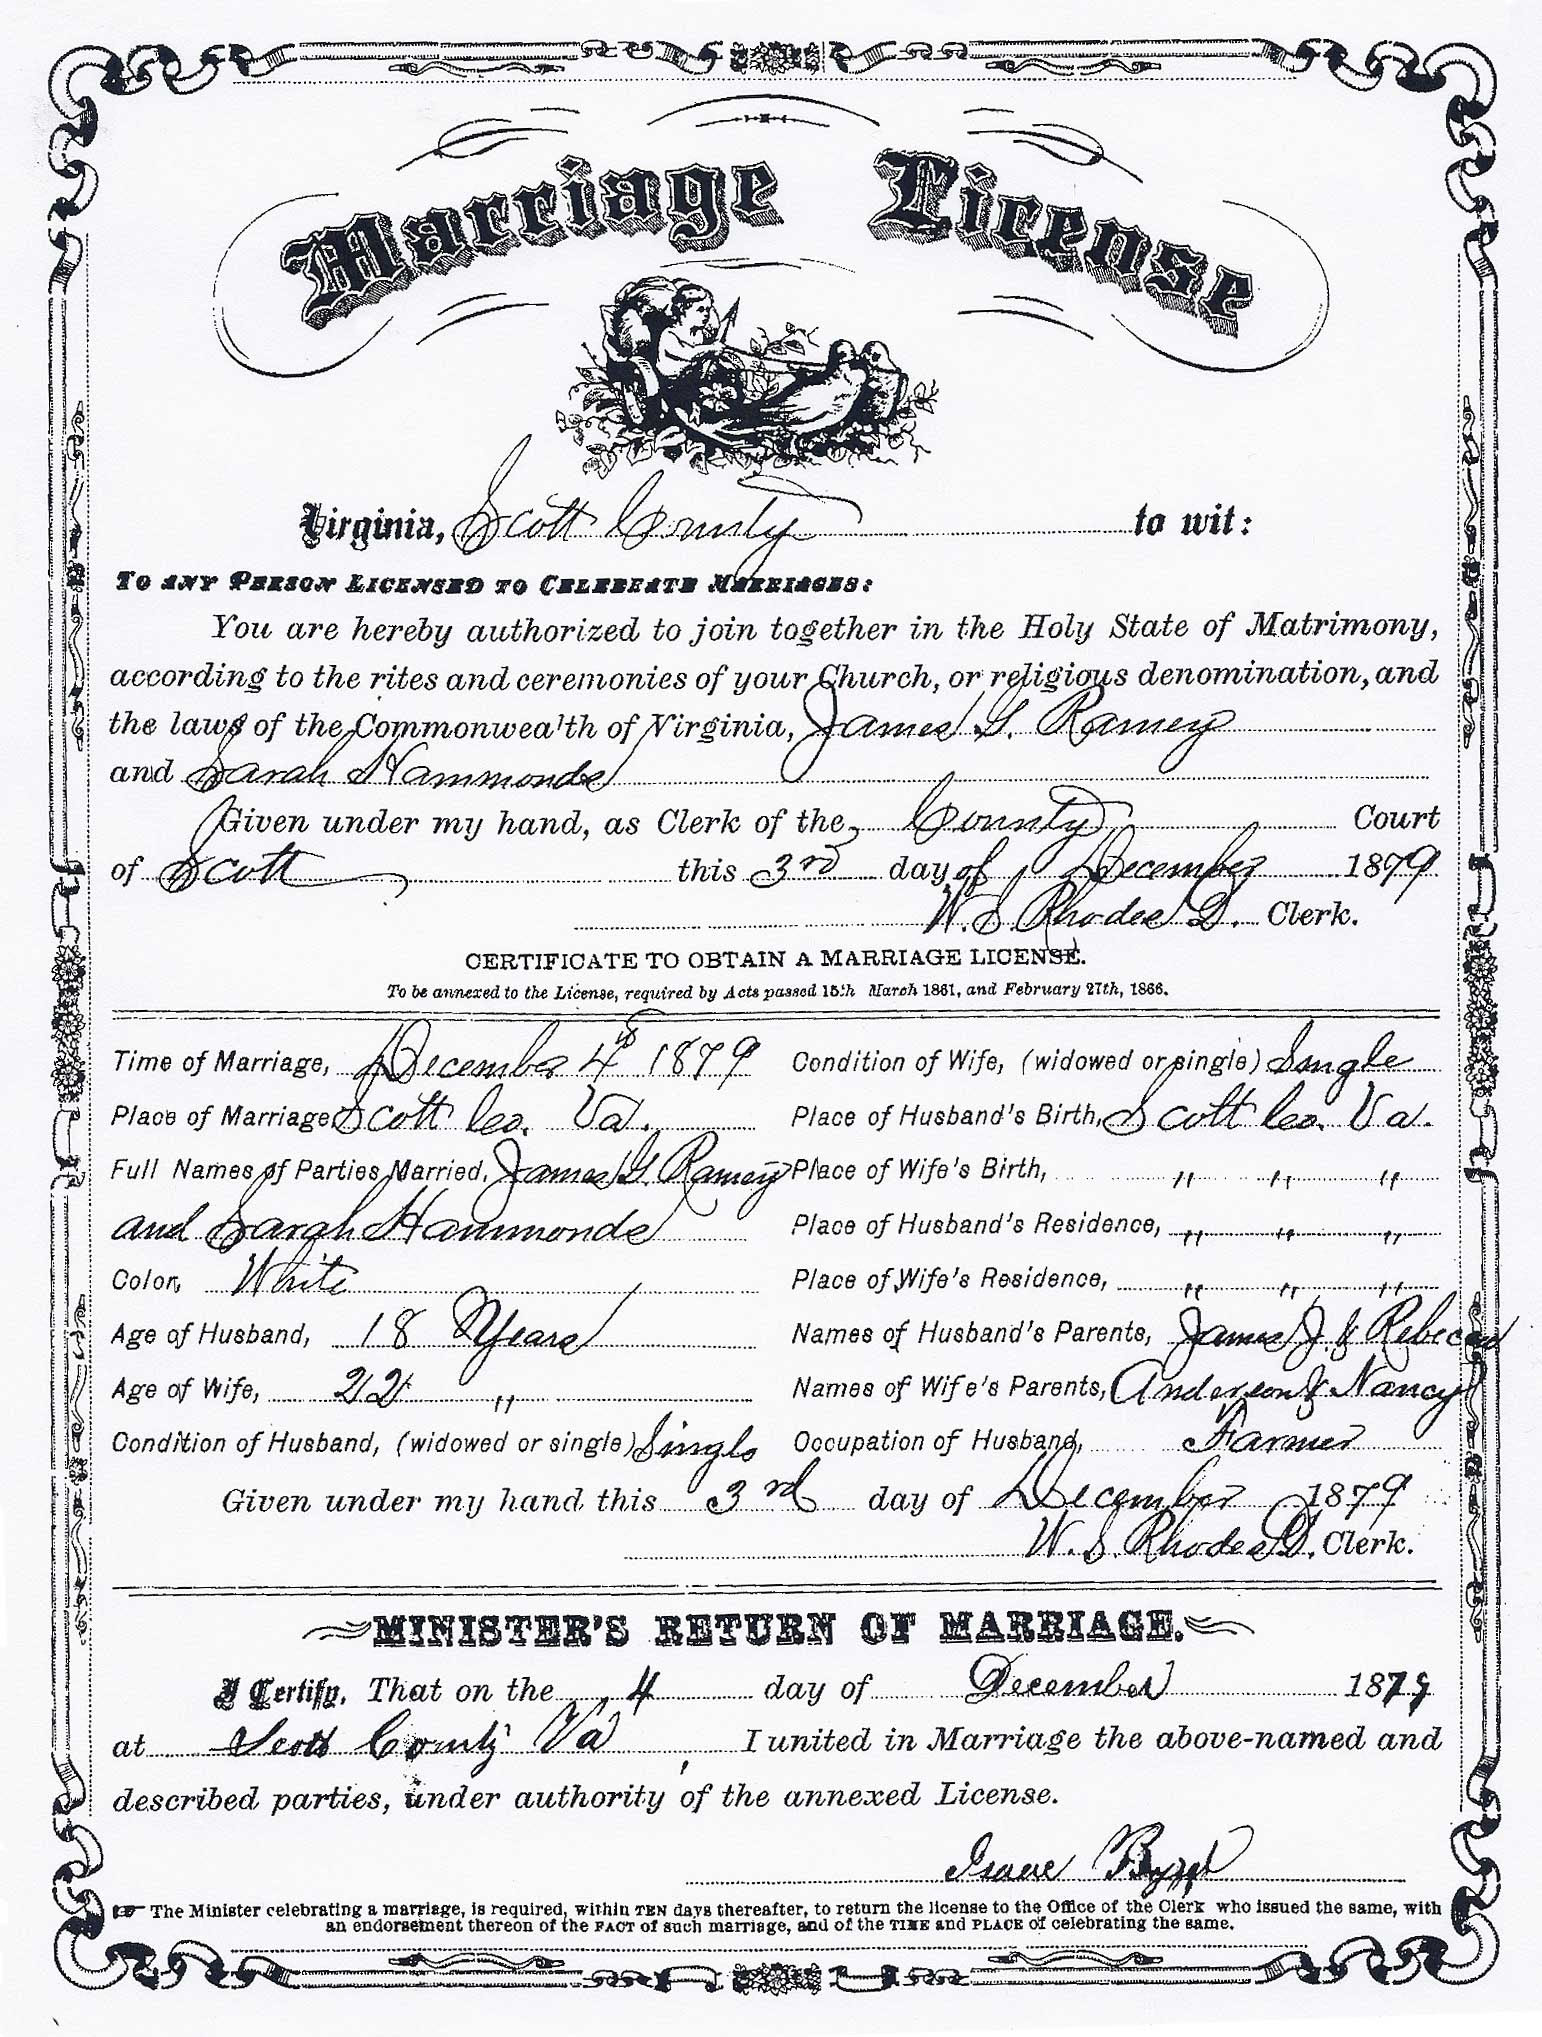 New Application For Birth Certificate Virginia